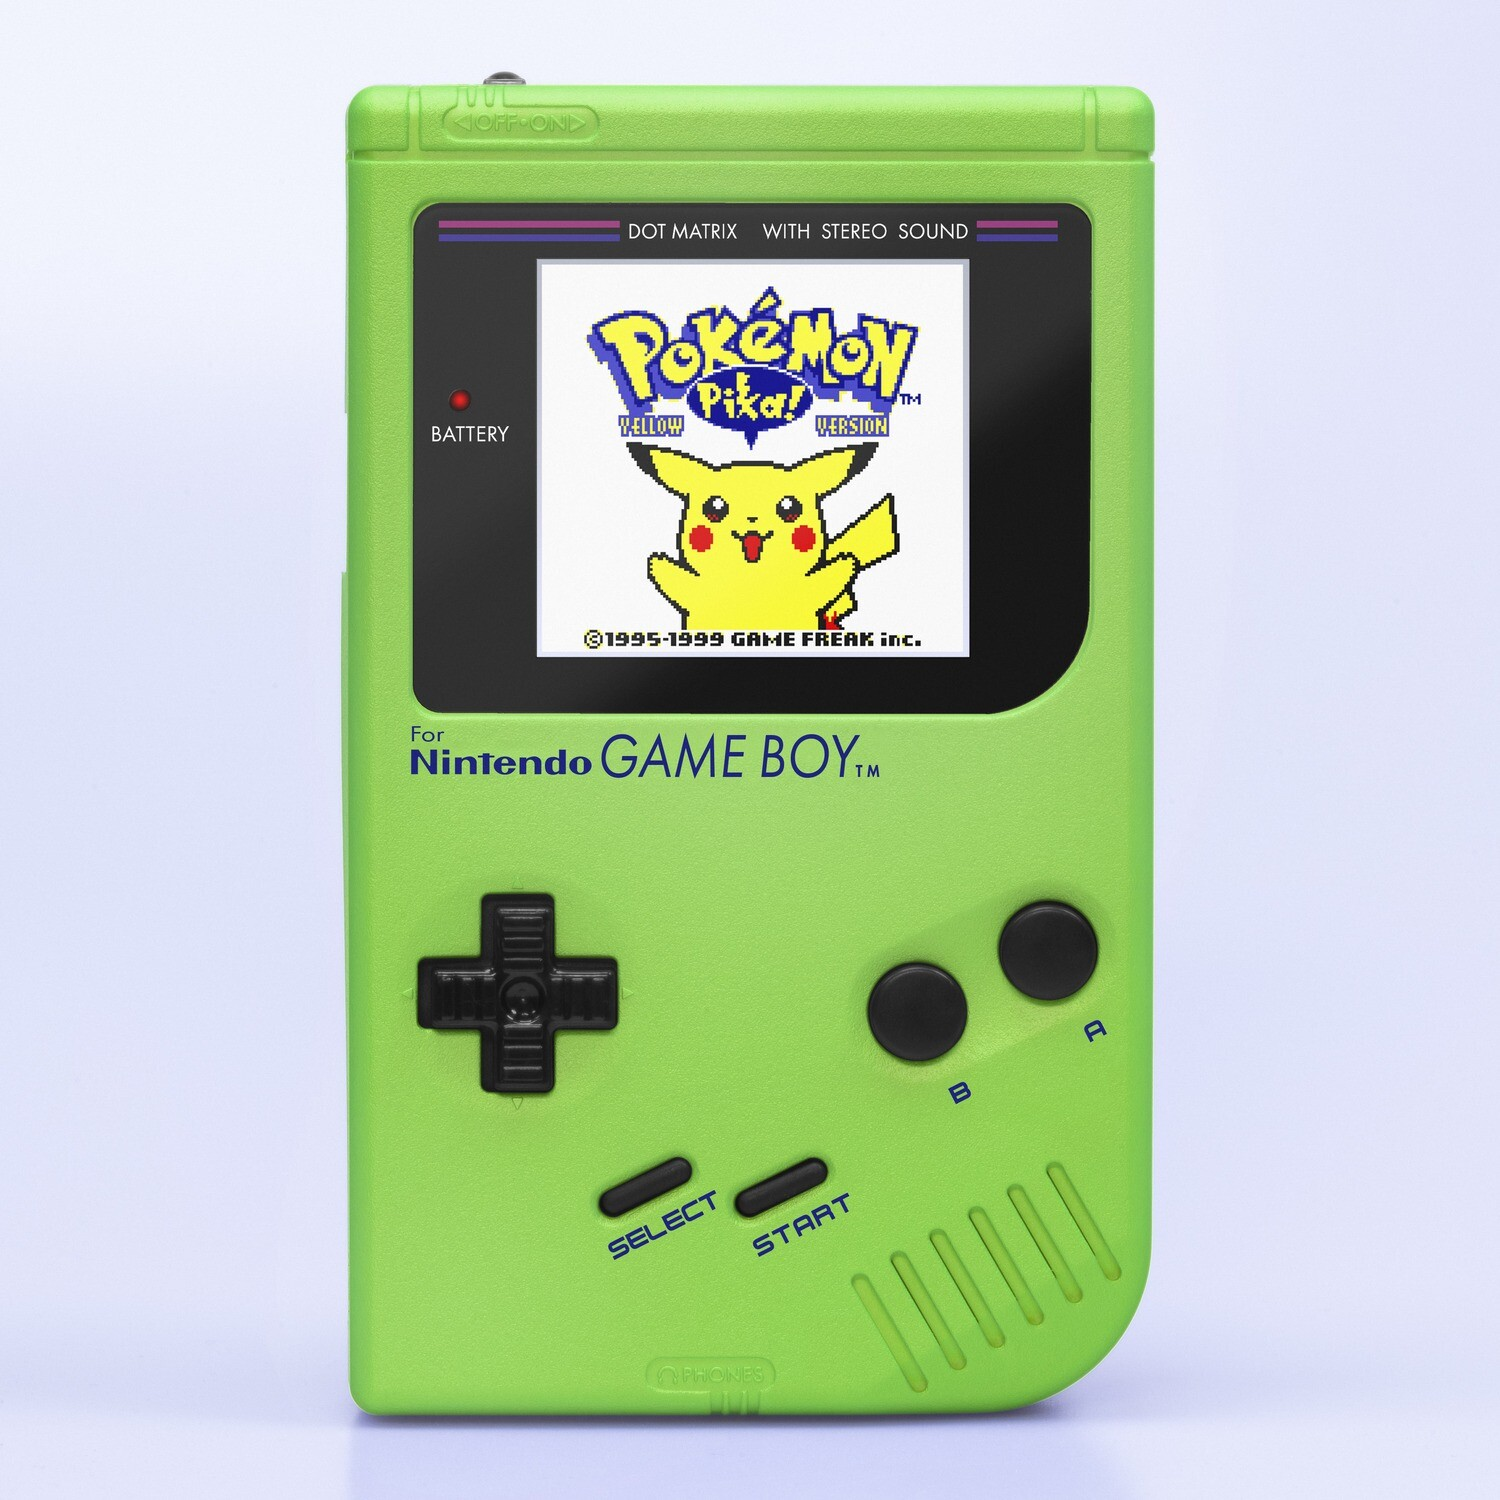 Game Boy Original: Prestige Edition (Pearl Green)